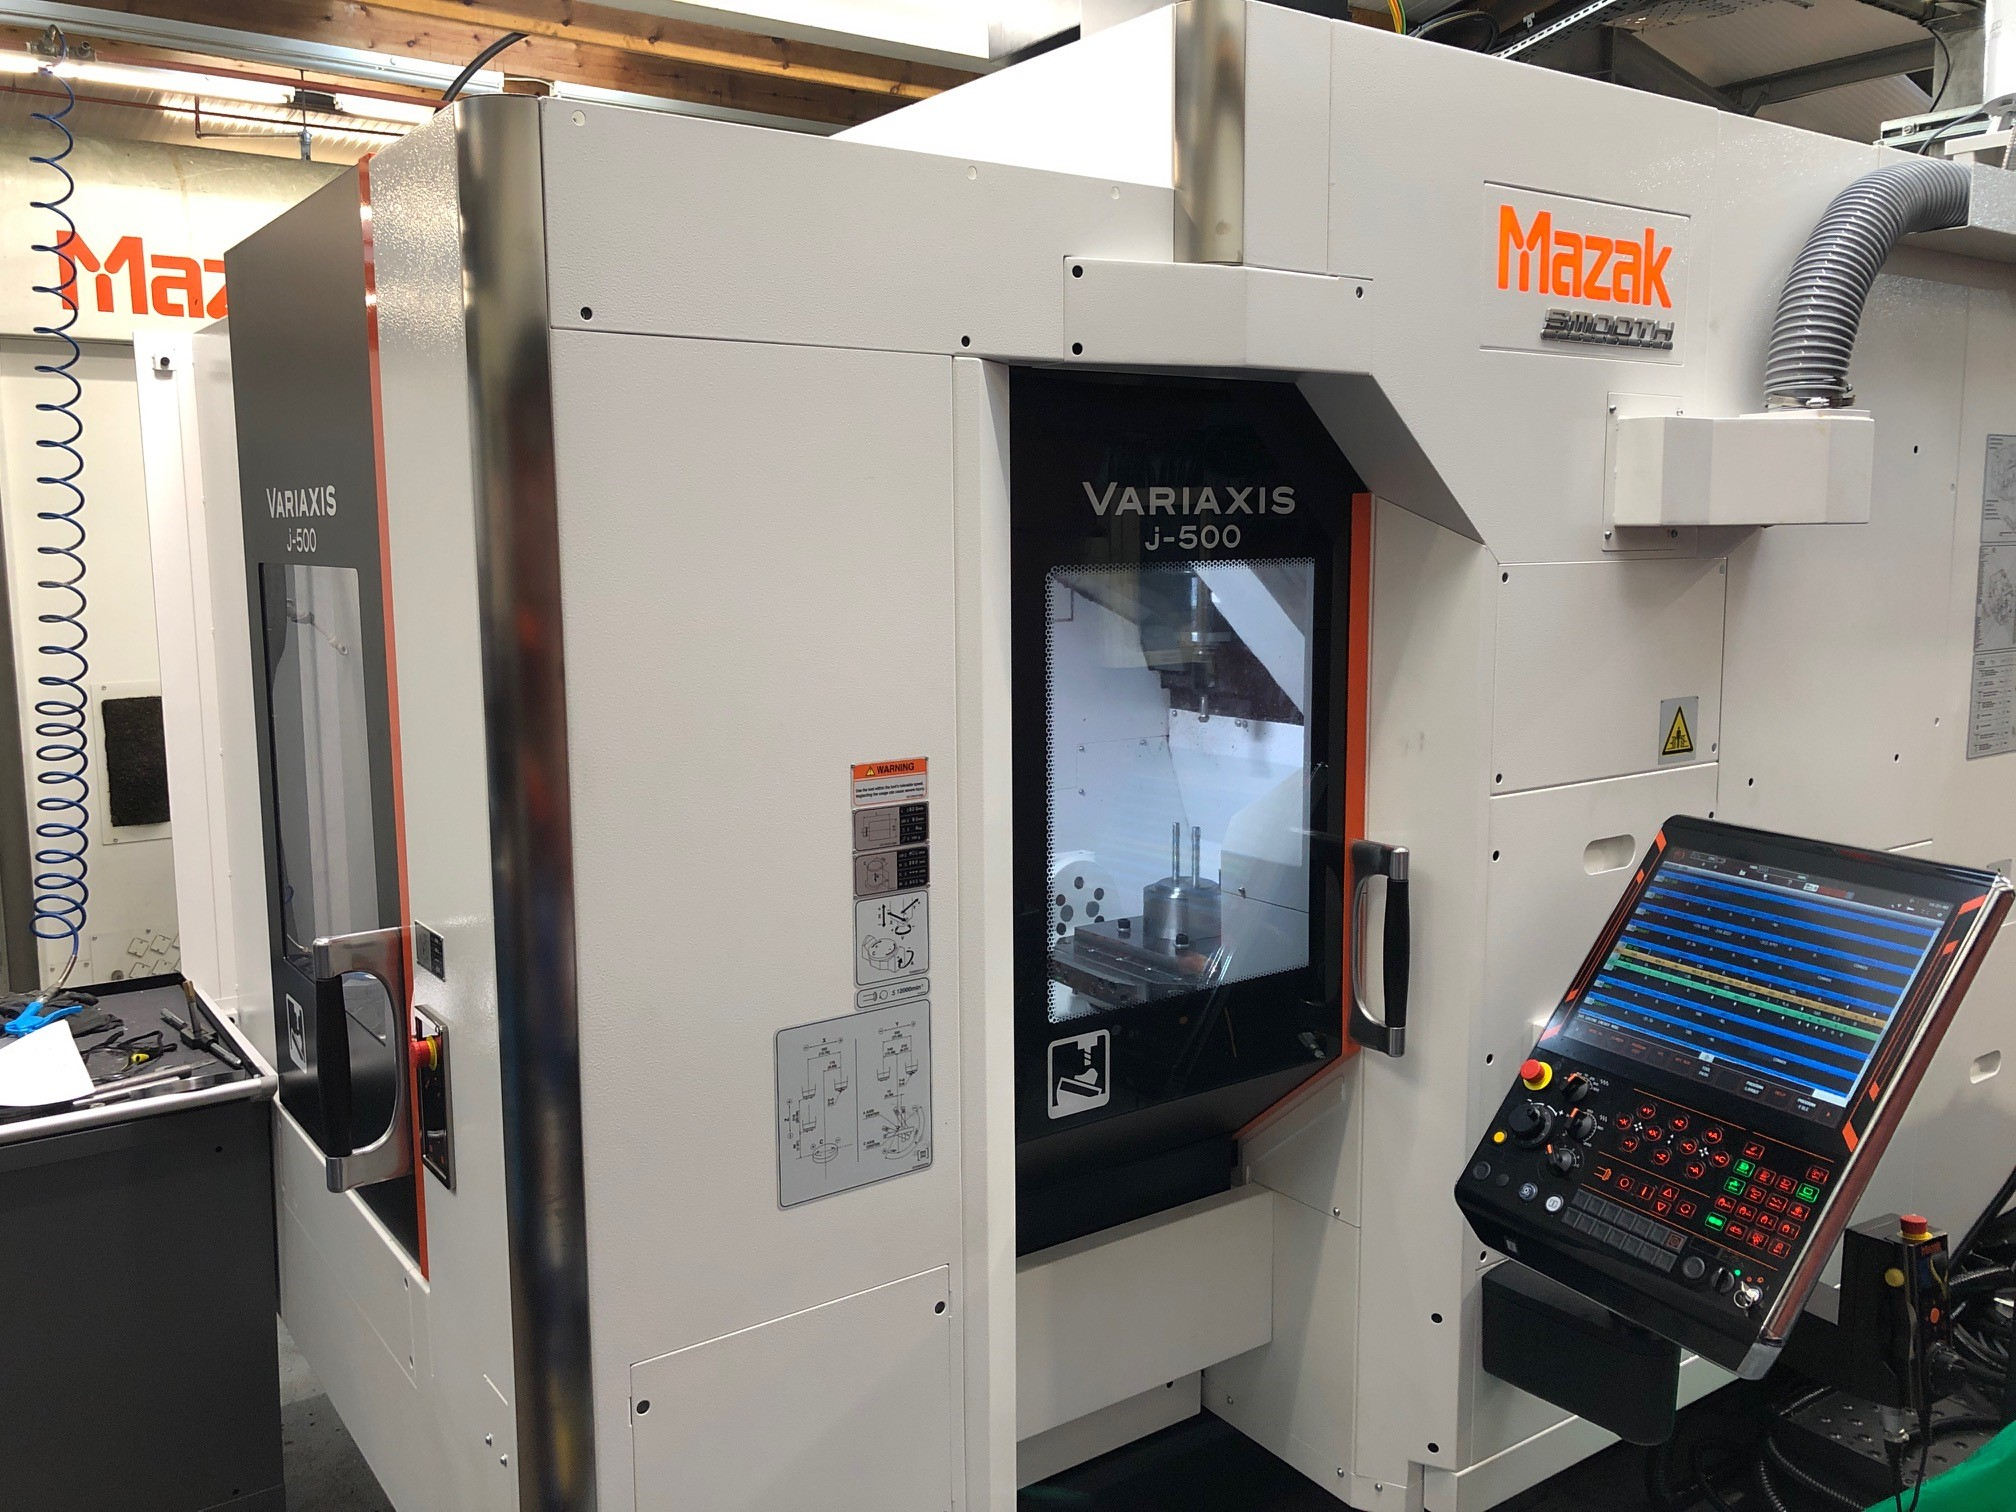 Another Day, Another New Machine – Variaxis J-500